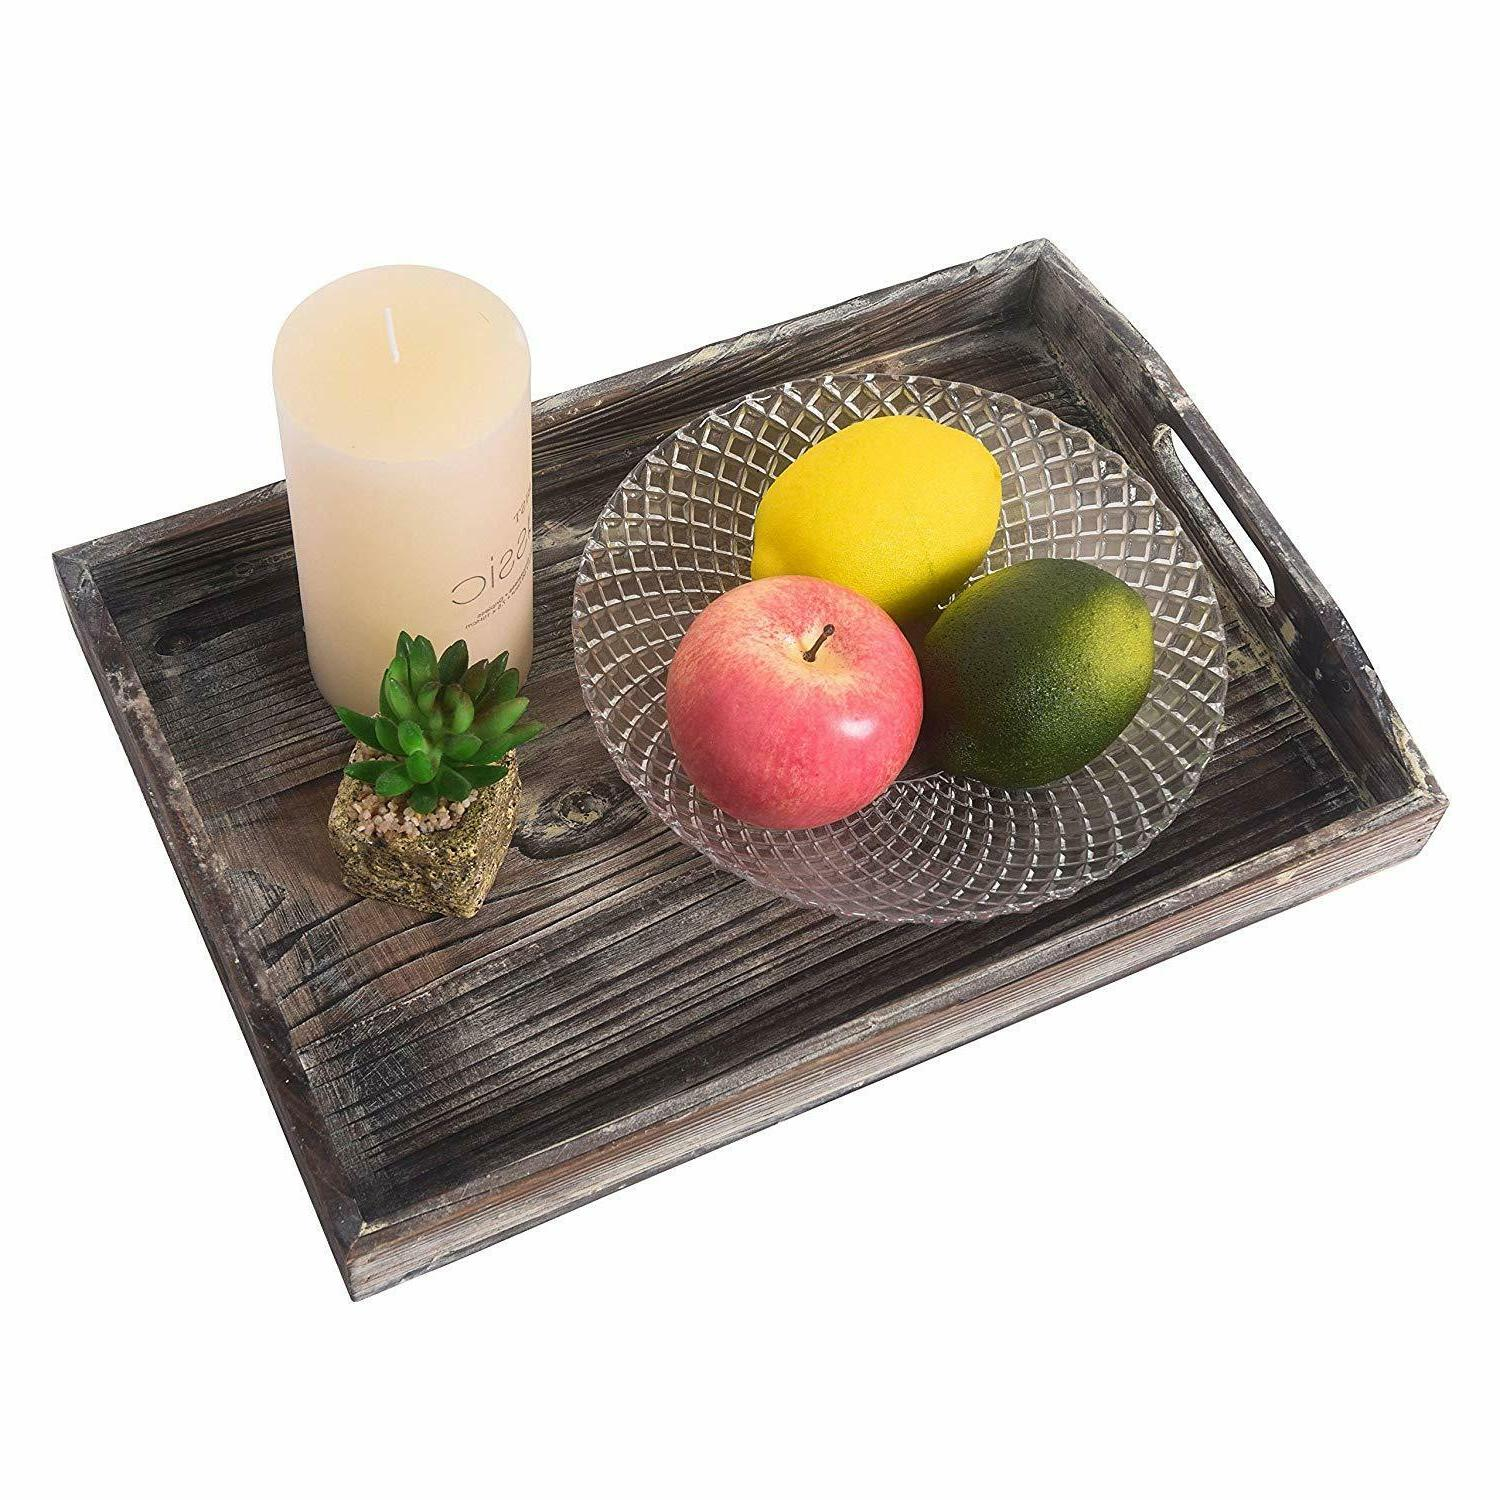 Ottoman Wooden Rustic Trays Plate Cutout Handles 3